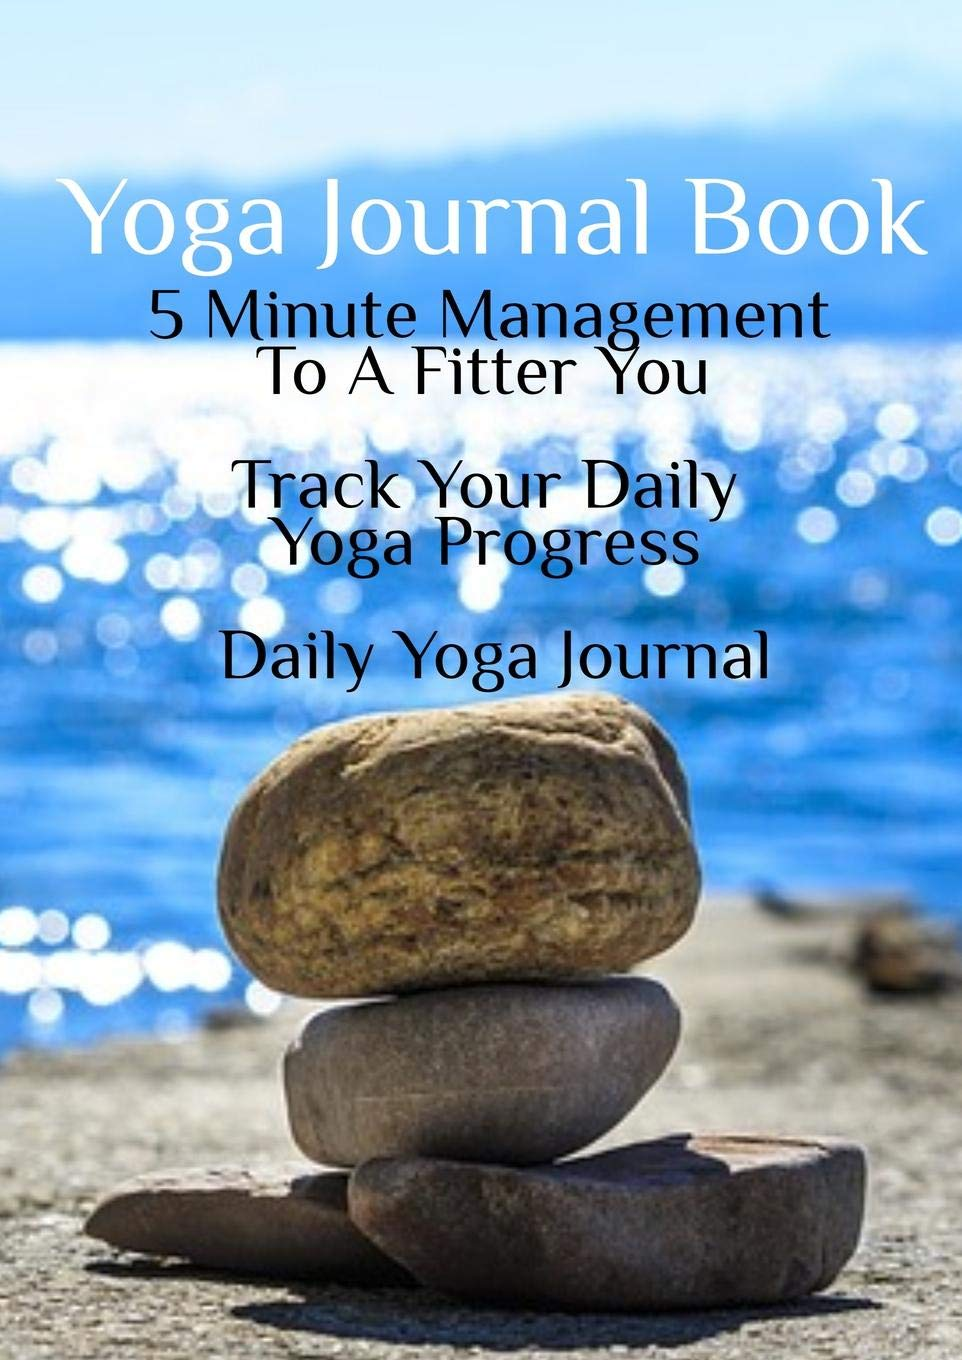 Yoga Journal Book: 5 Minute Management To A Fitter You ...